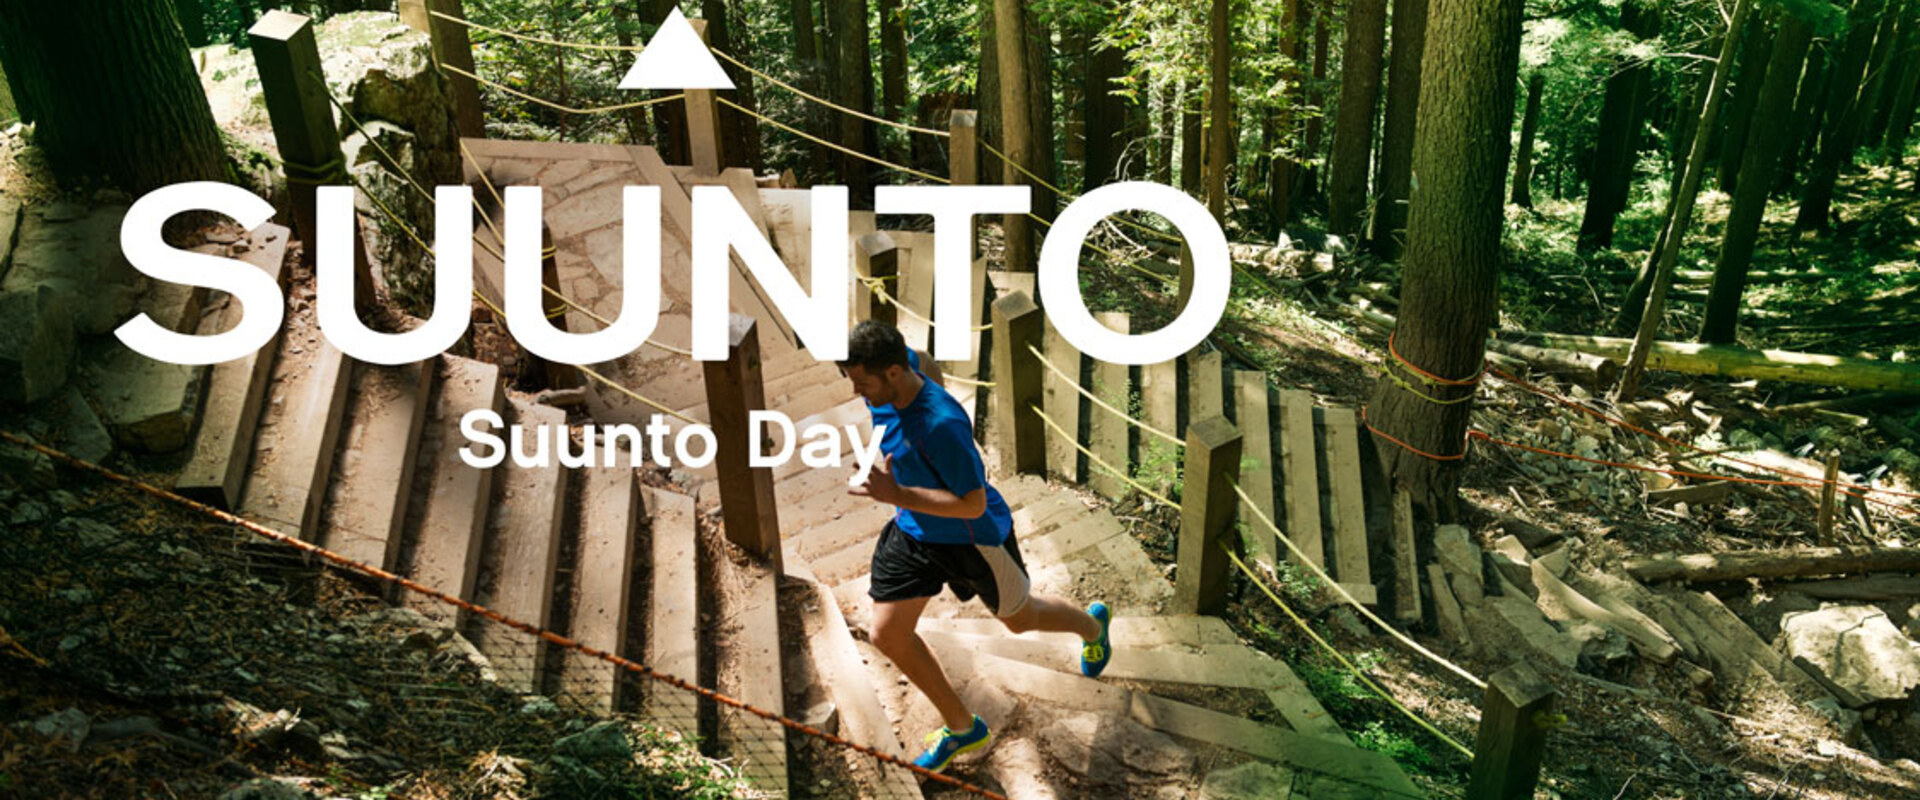 Suunto Day Graphic